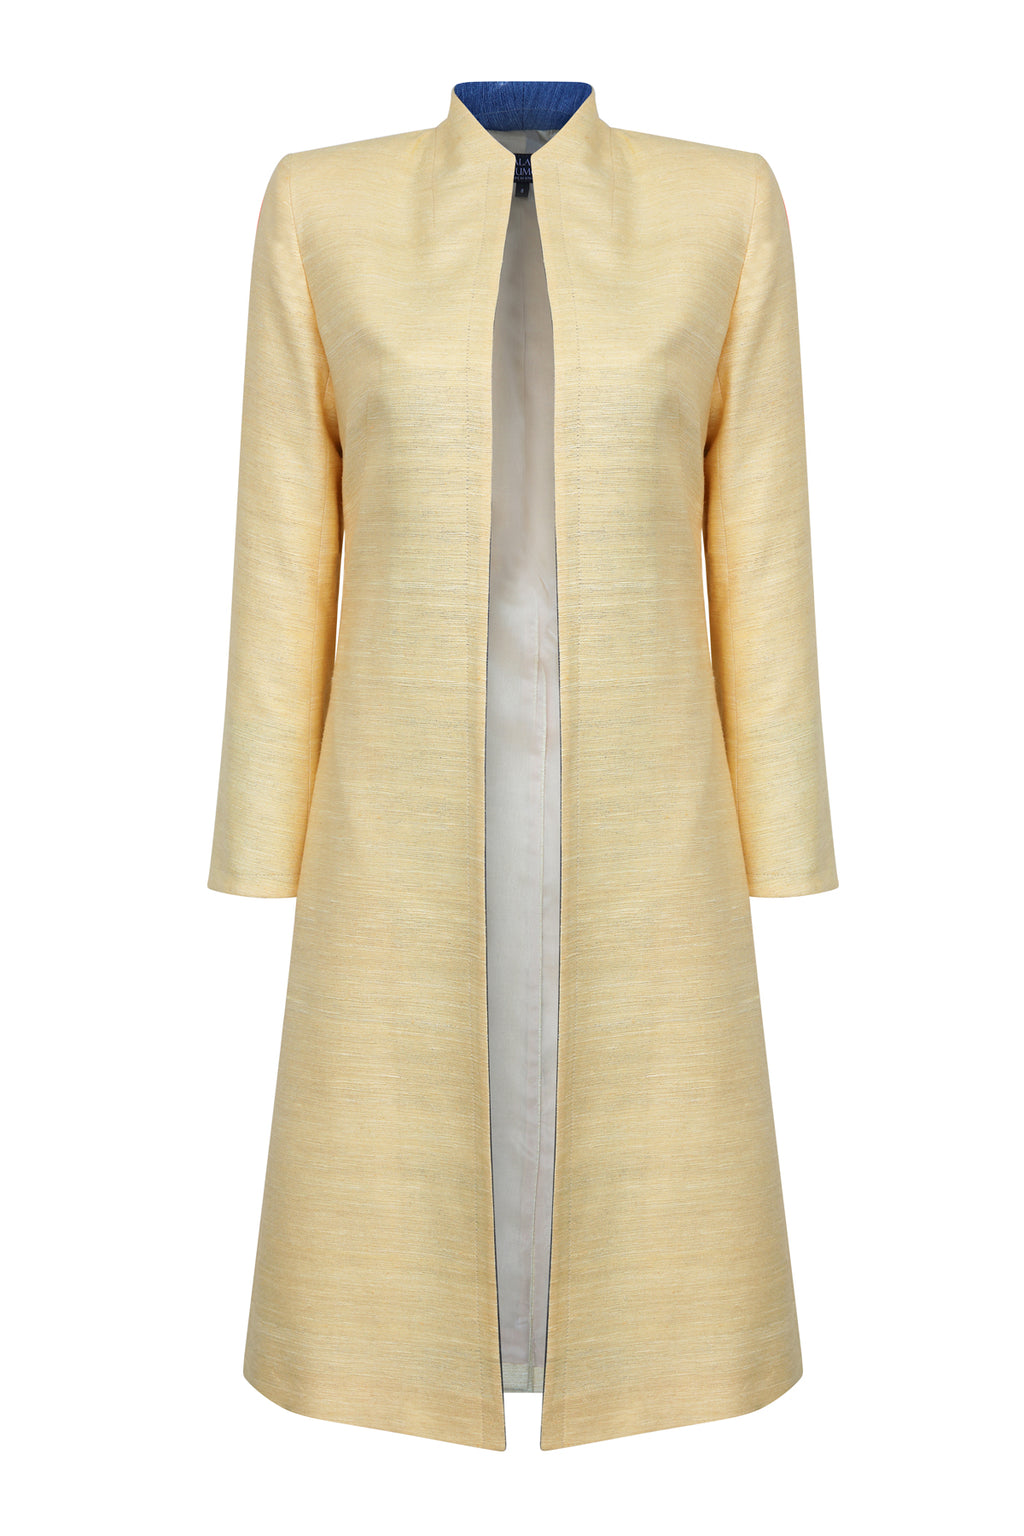 yellow knee length jacket for weddings